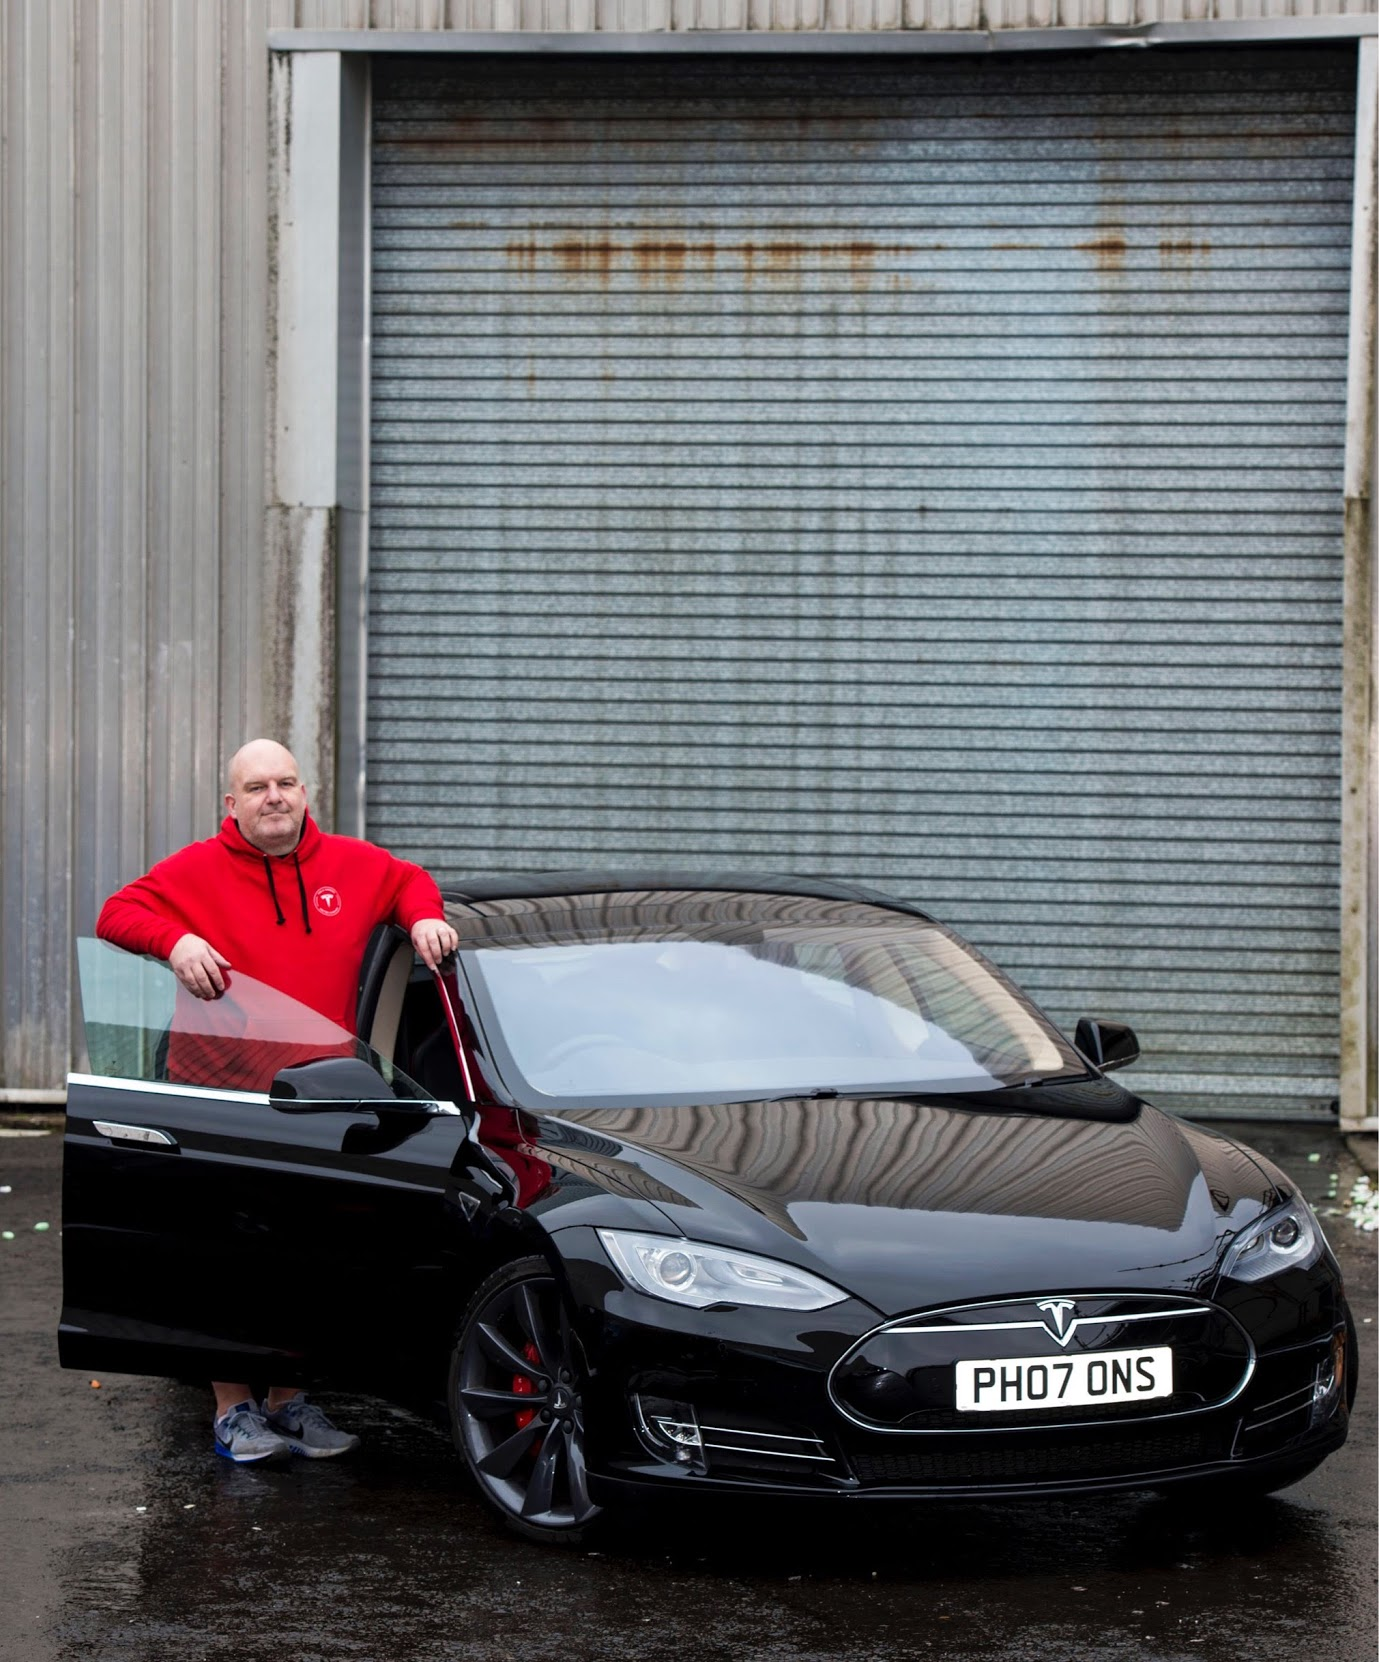 chris-clarkson-tesla-model-s-glasgow-museum-2